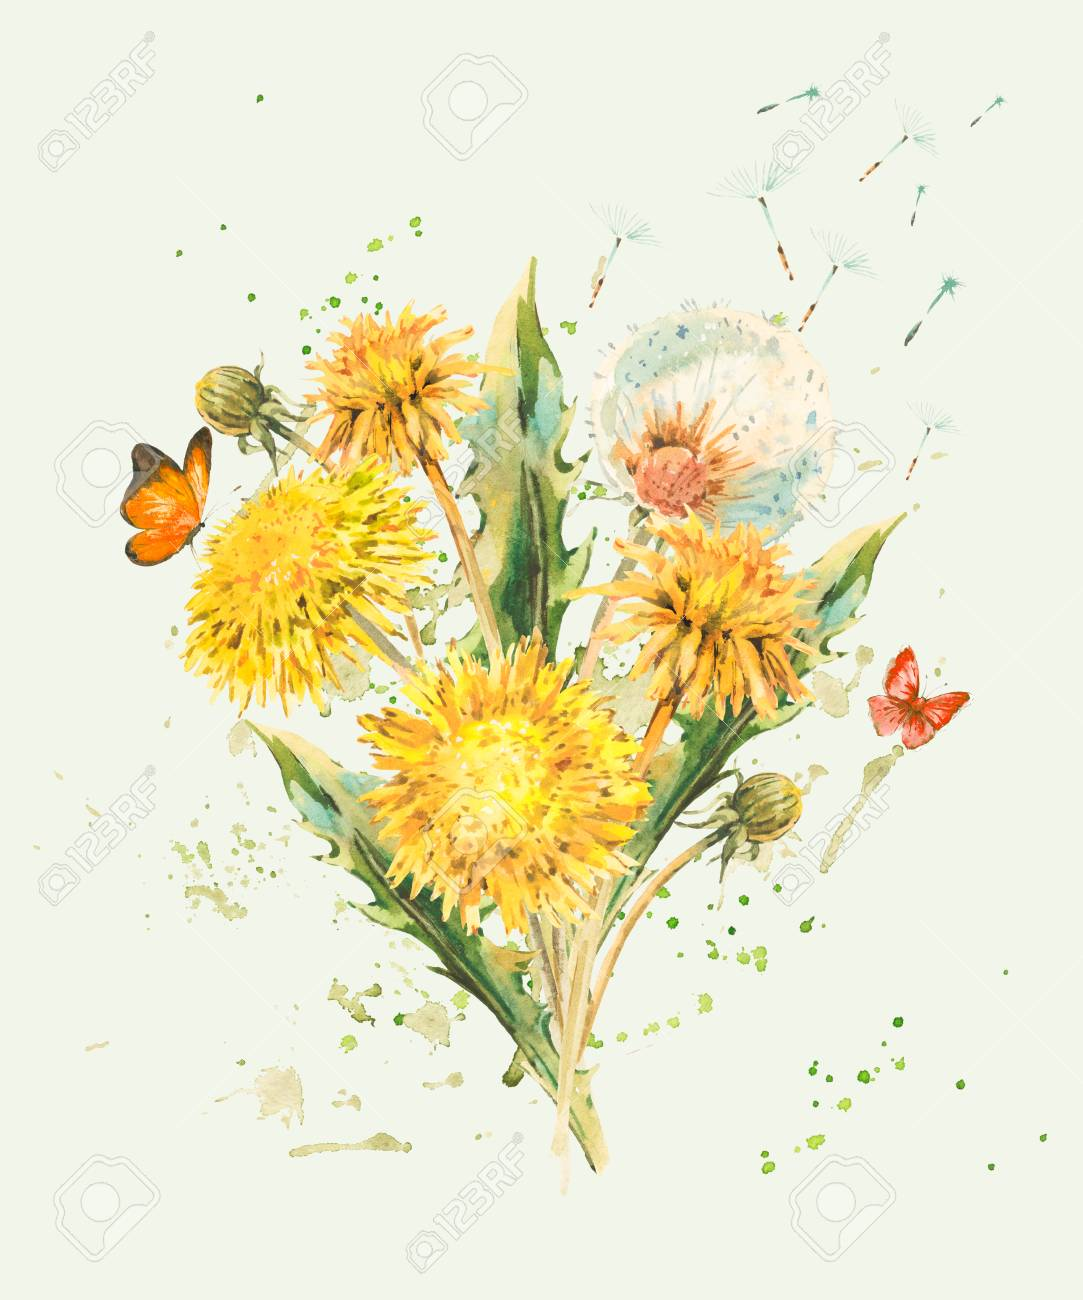 Watercolor Spring Flowers Of Yellow Dandelions Stock Photo Picture